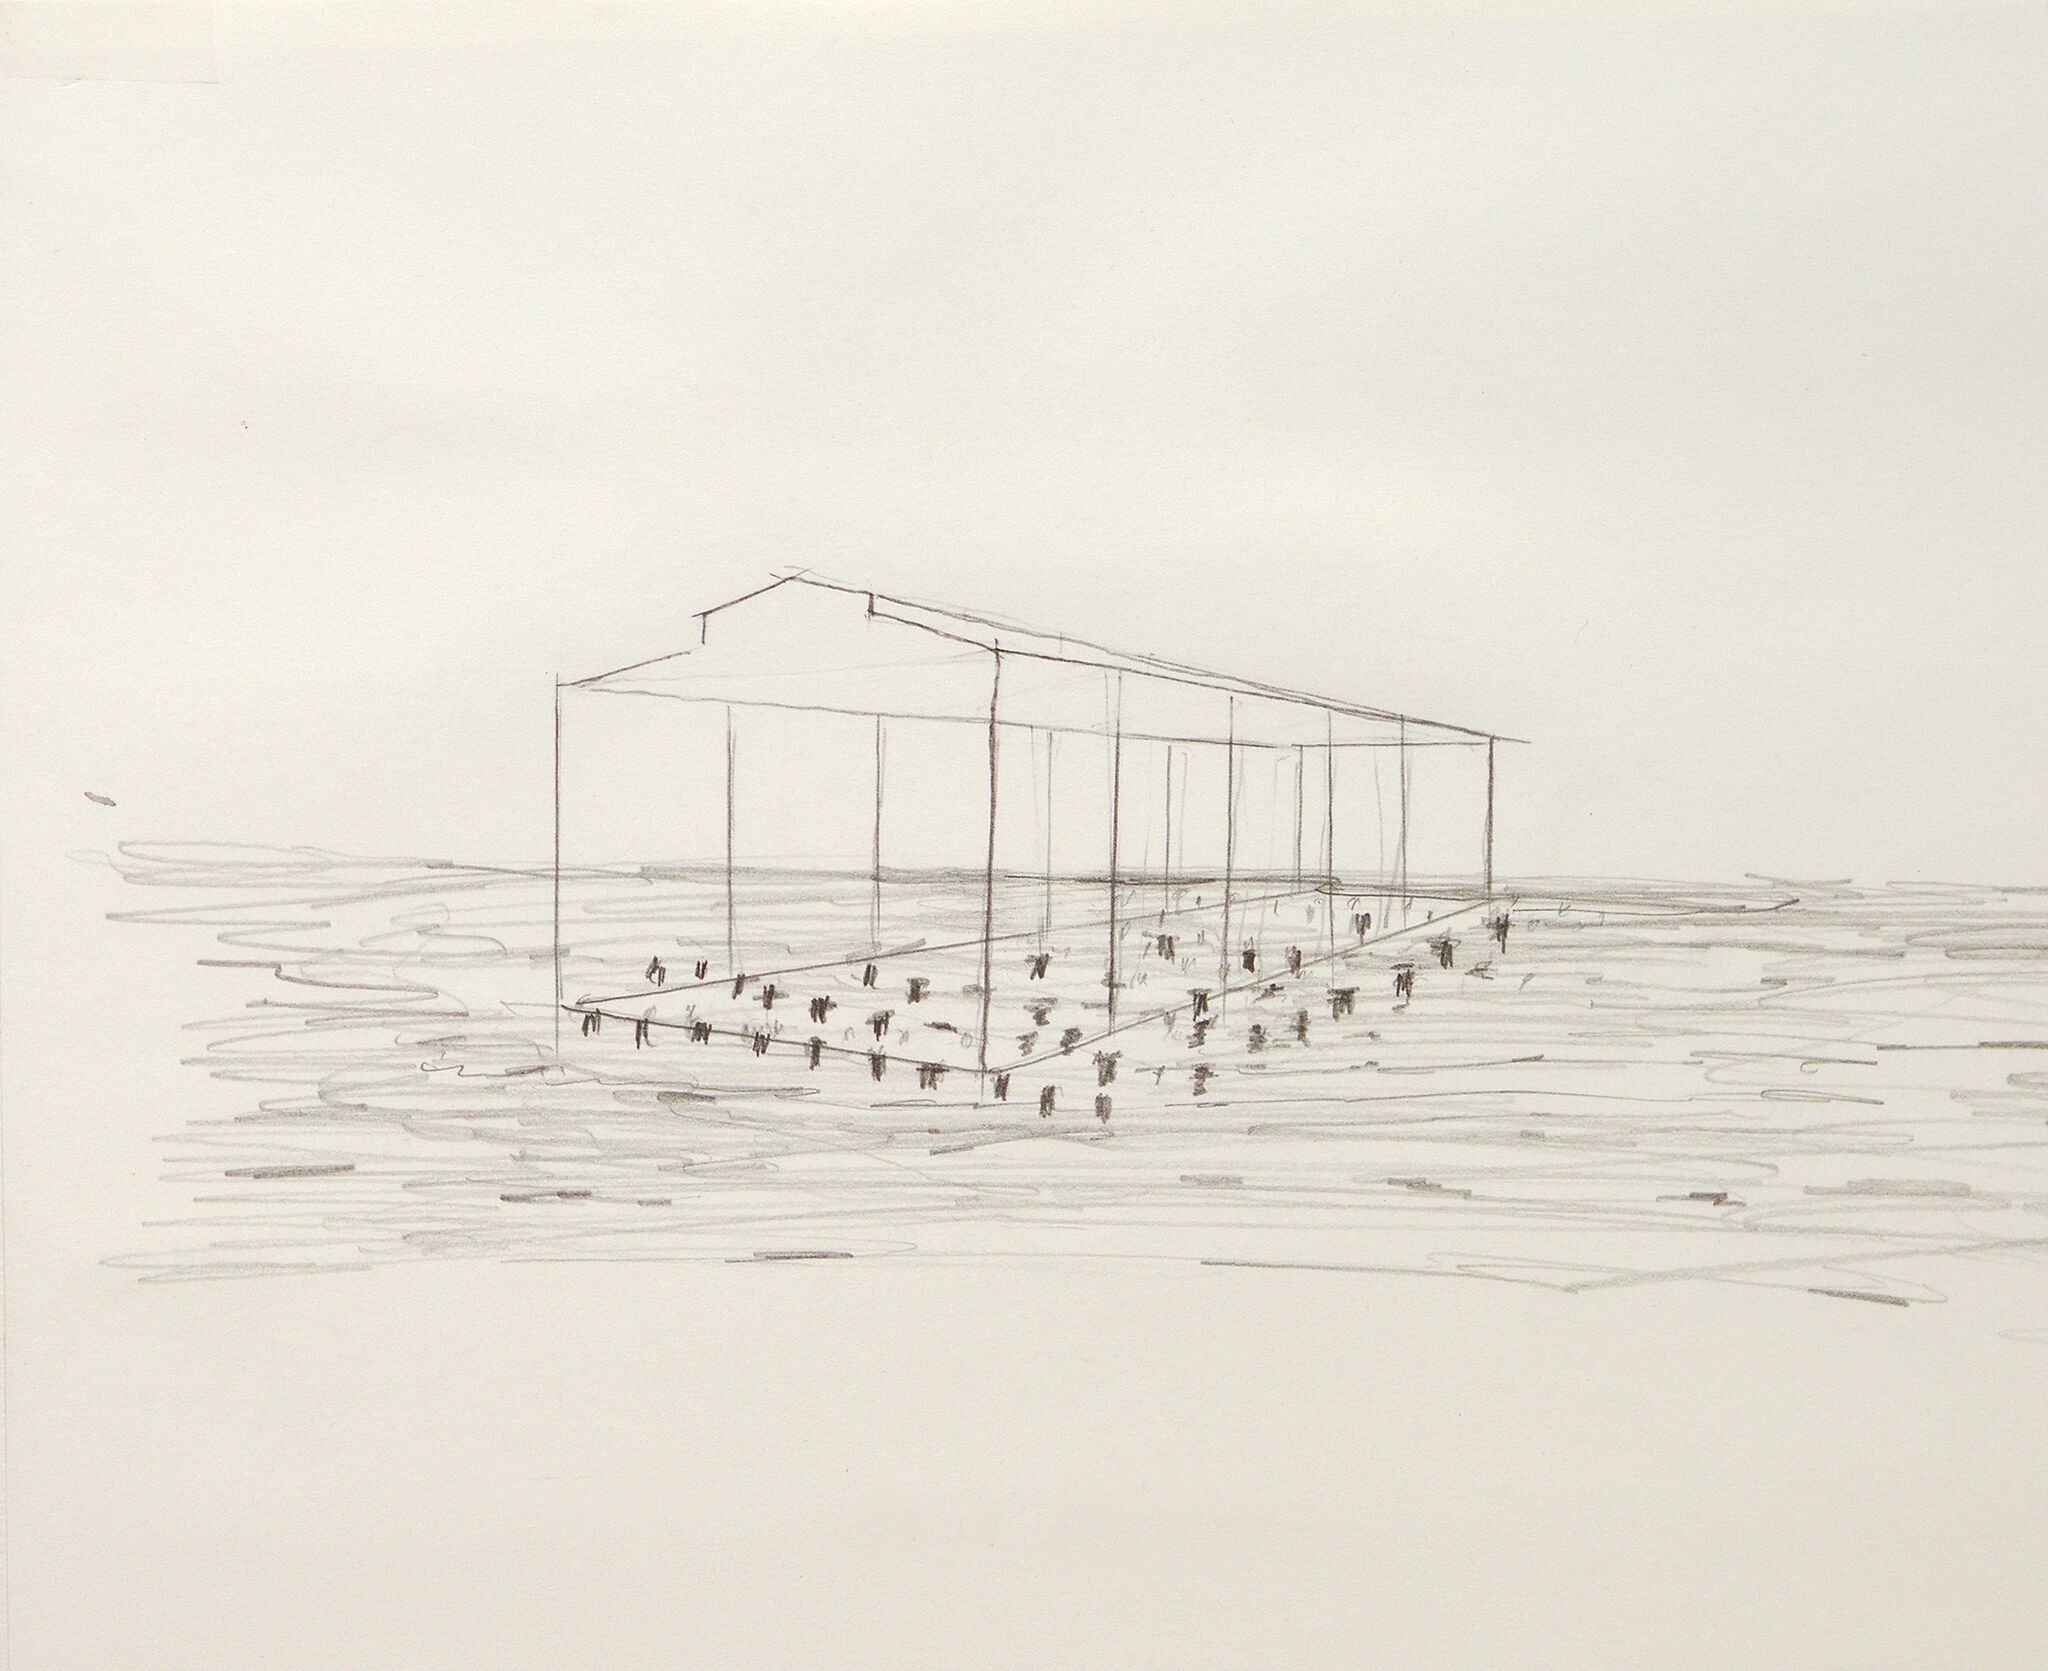 A sketch for a sculpture that resembles the outline of a pier shed